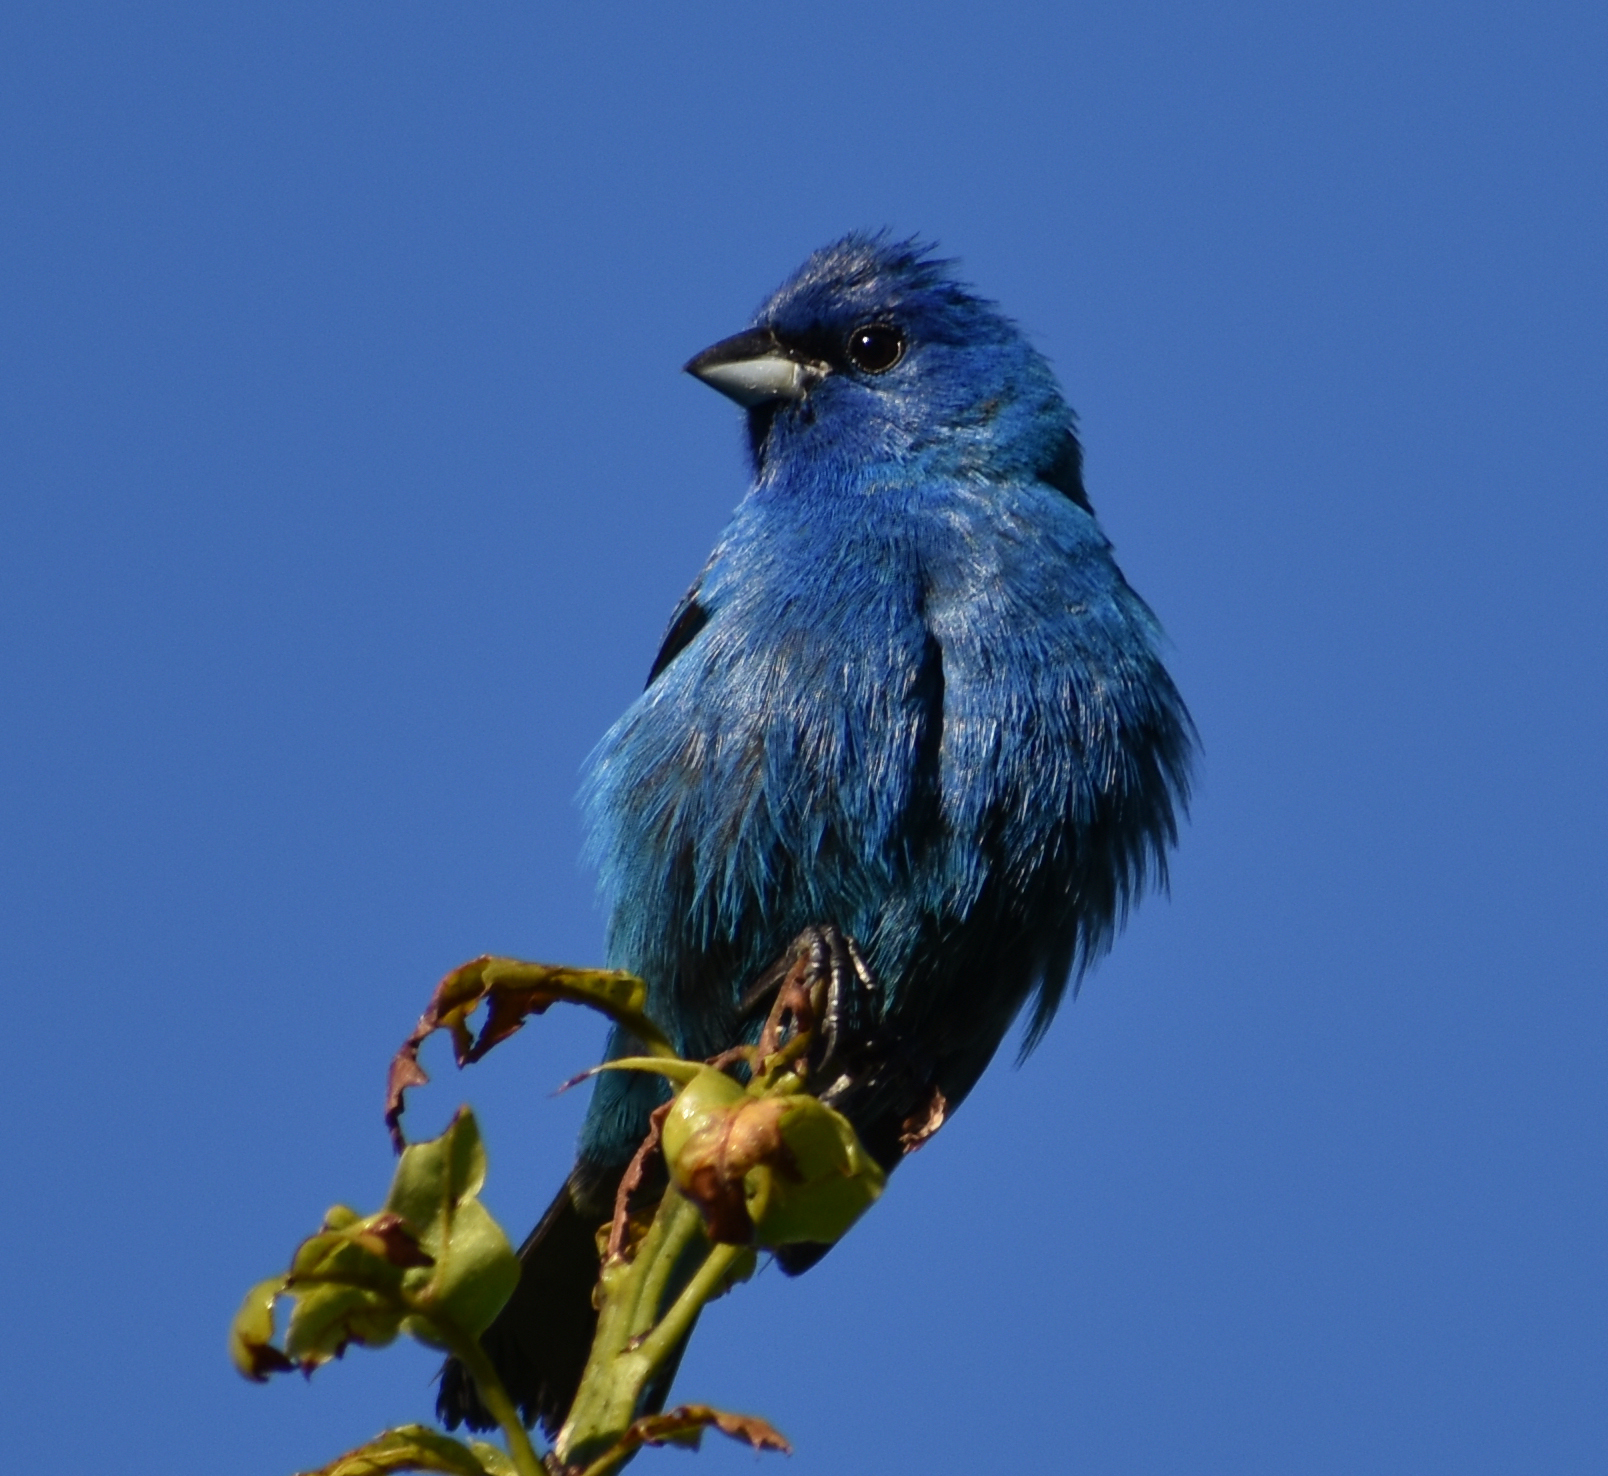 I want to find an Indigo Bunting?